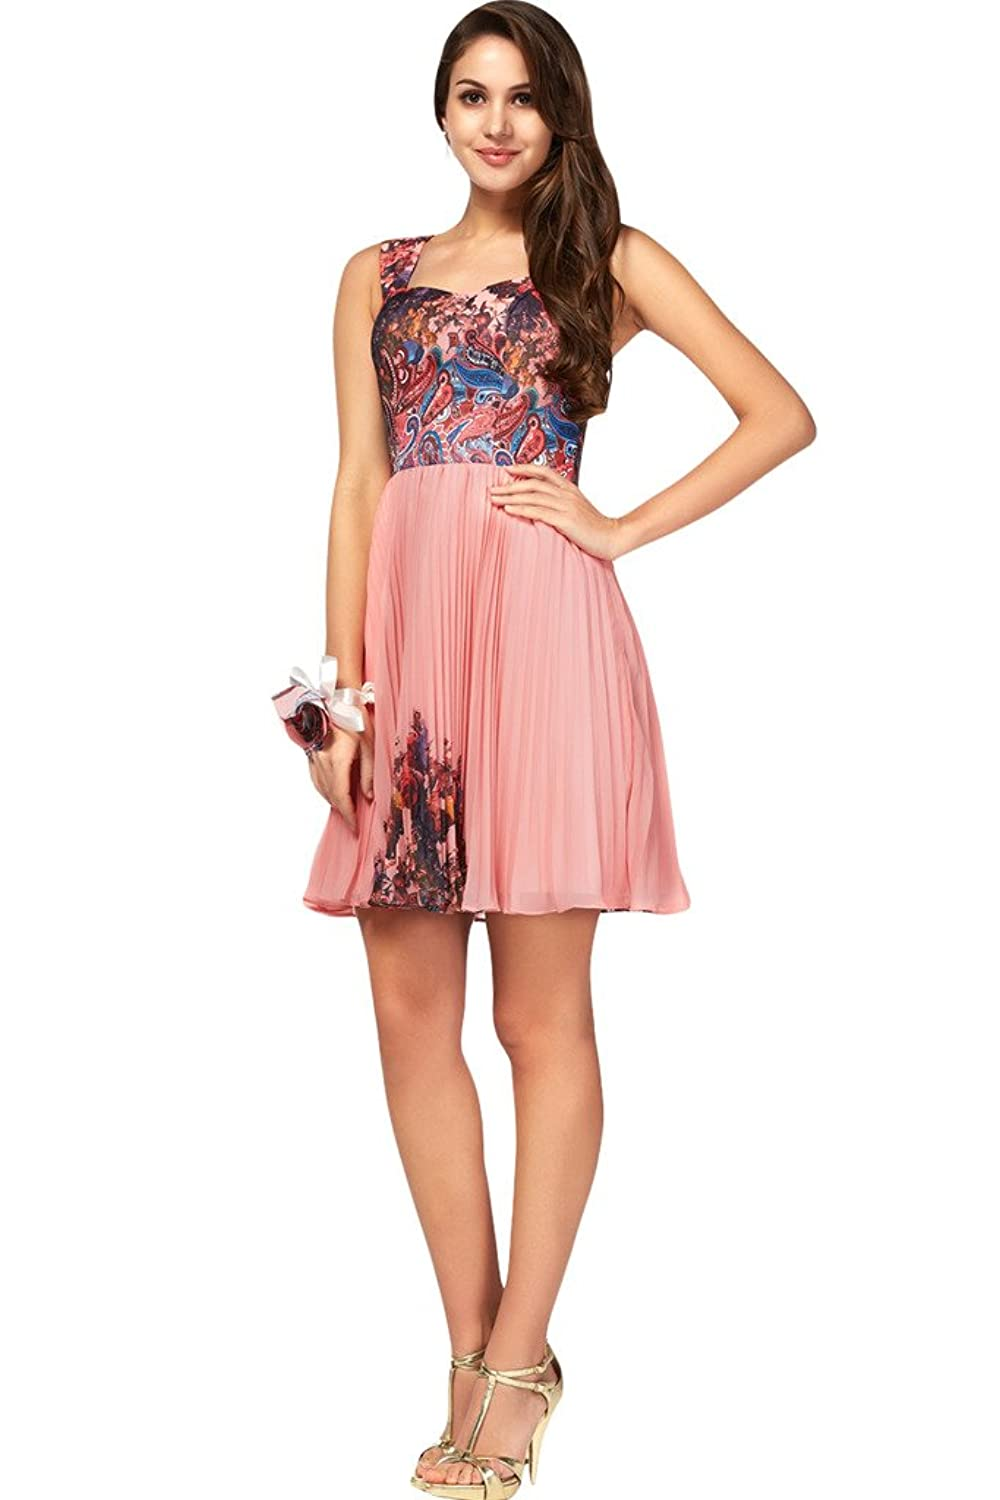 Ivydressing Fancy Printing Chiffon Short Prom Gowns Party Homecoming Dresses